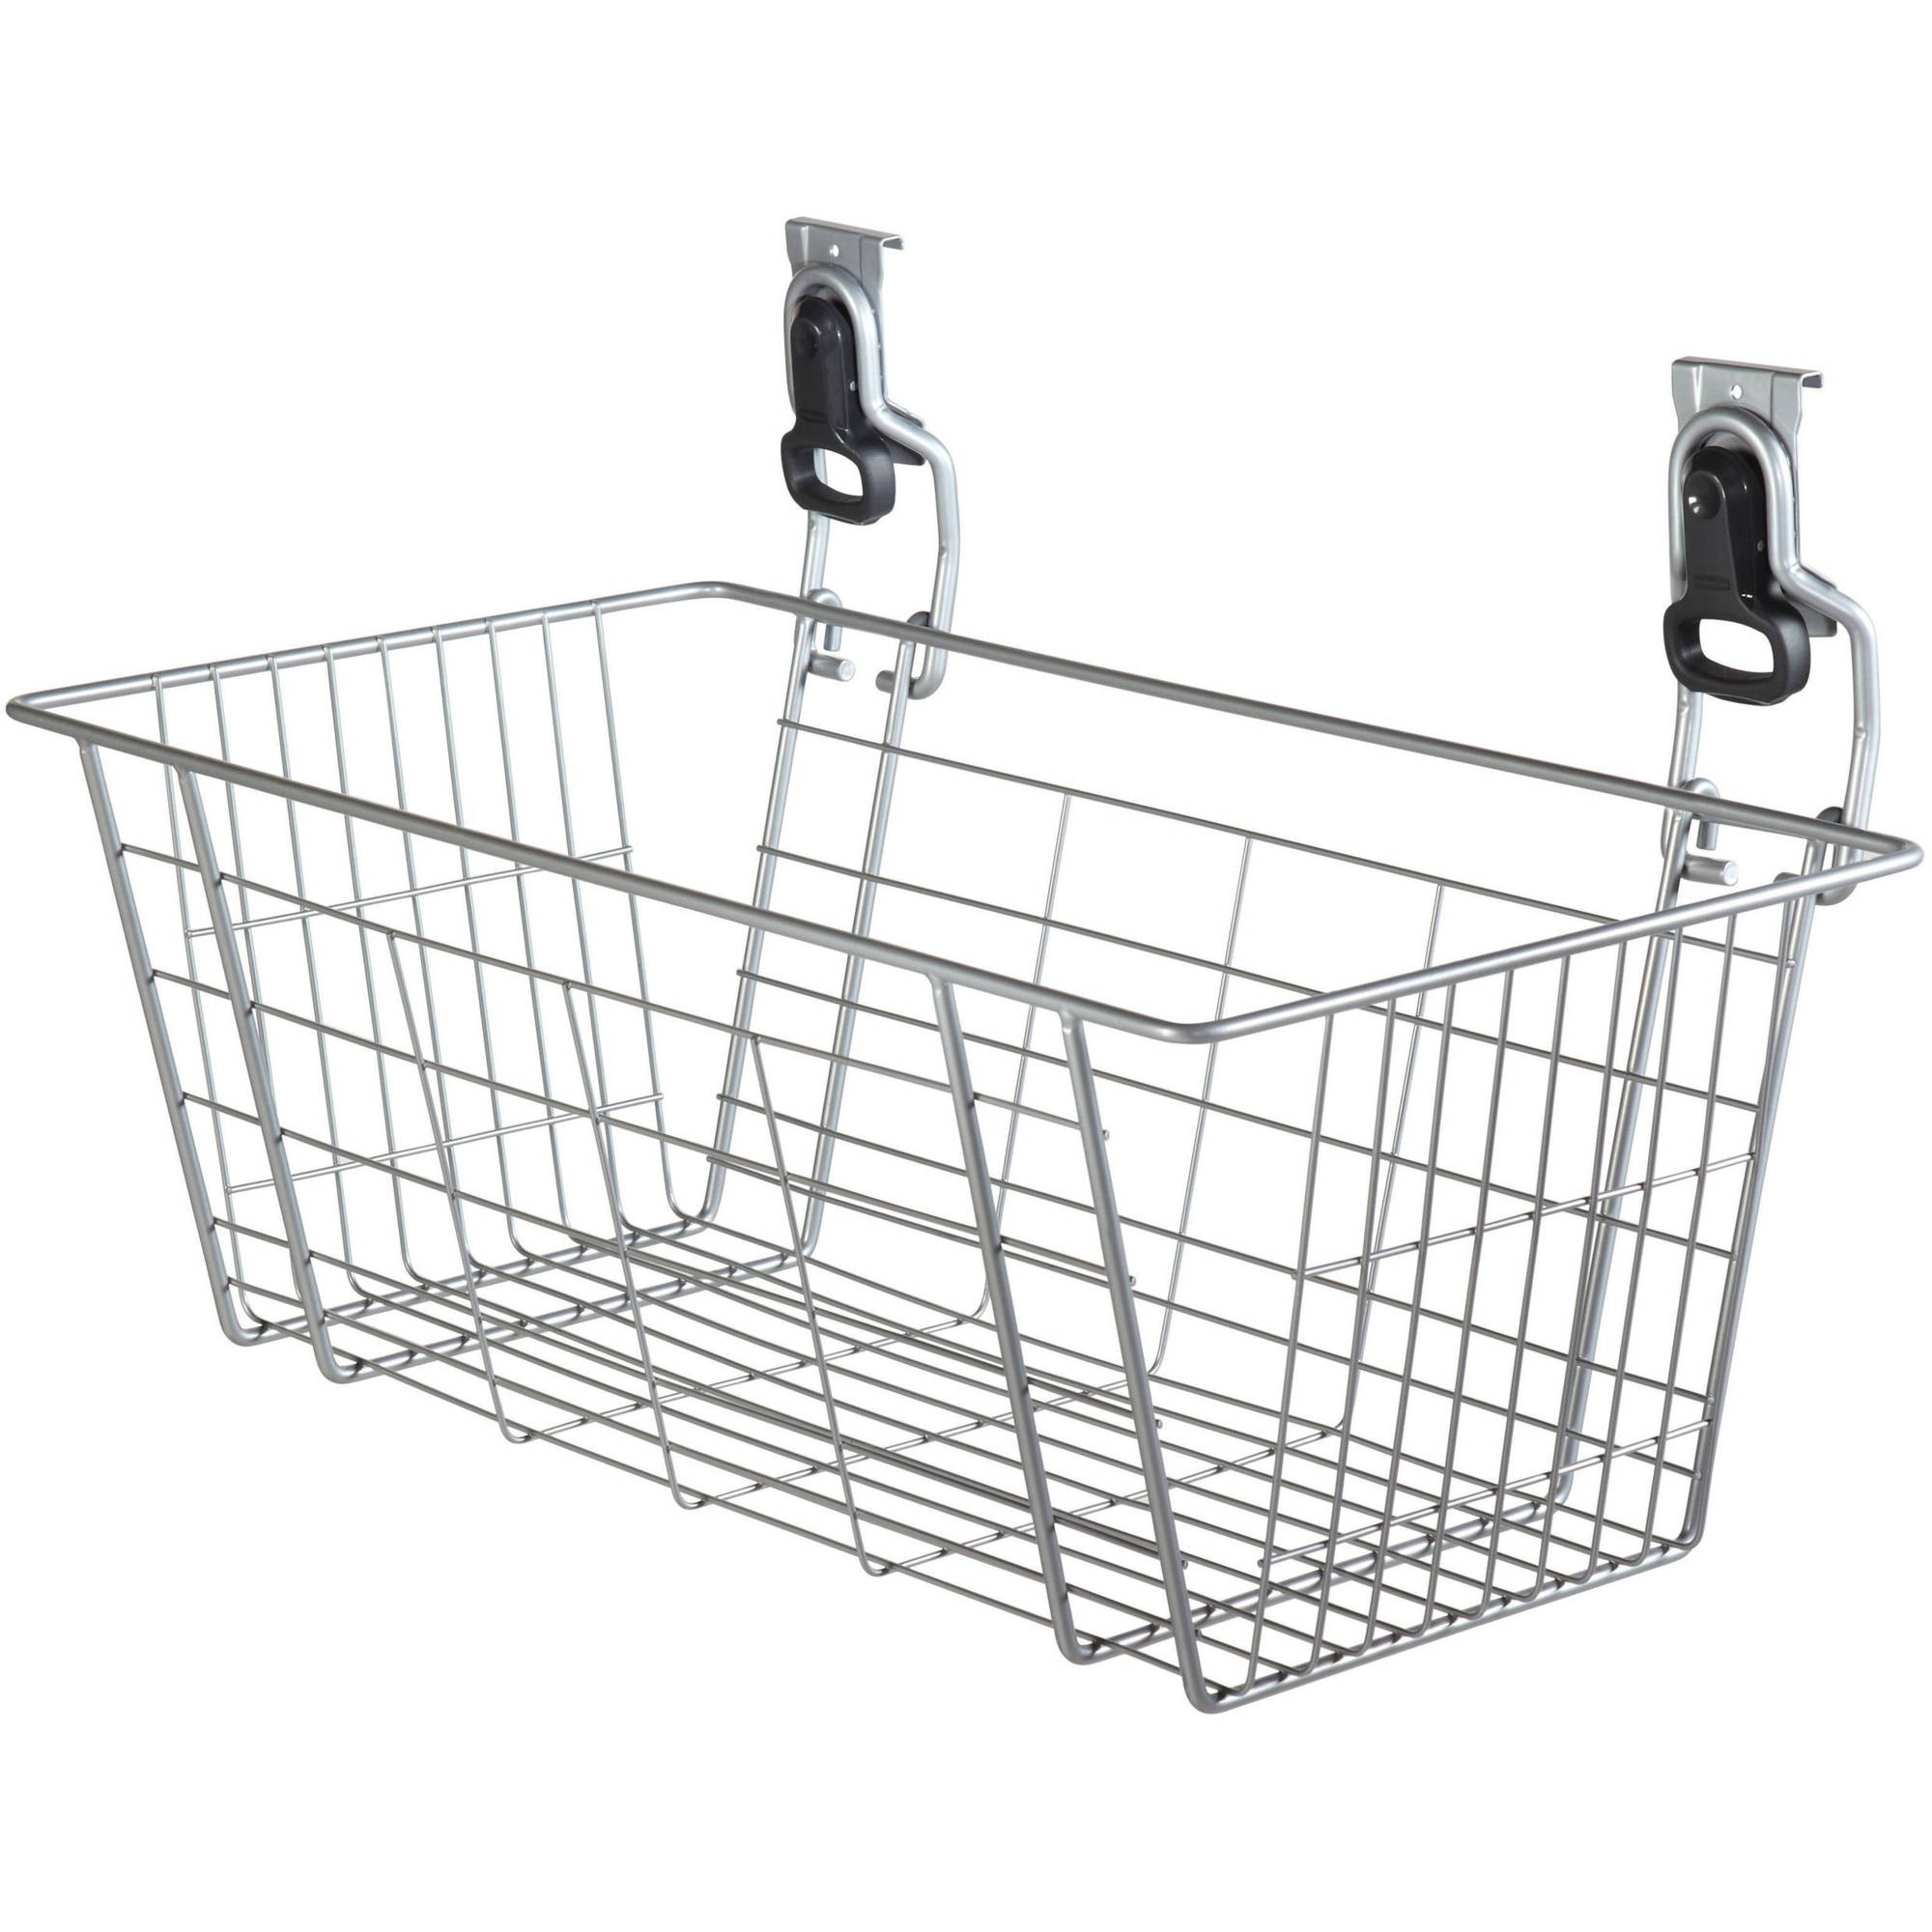 "Rubbermaid Home Prod Dorfile 1784453 24"" FastTrack Wire Basket"